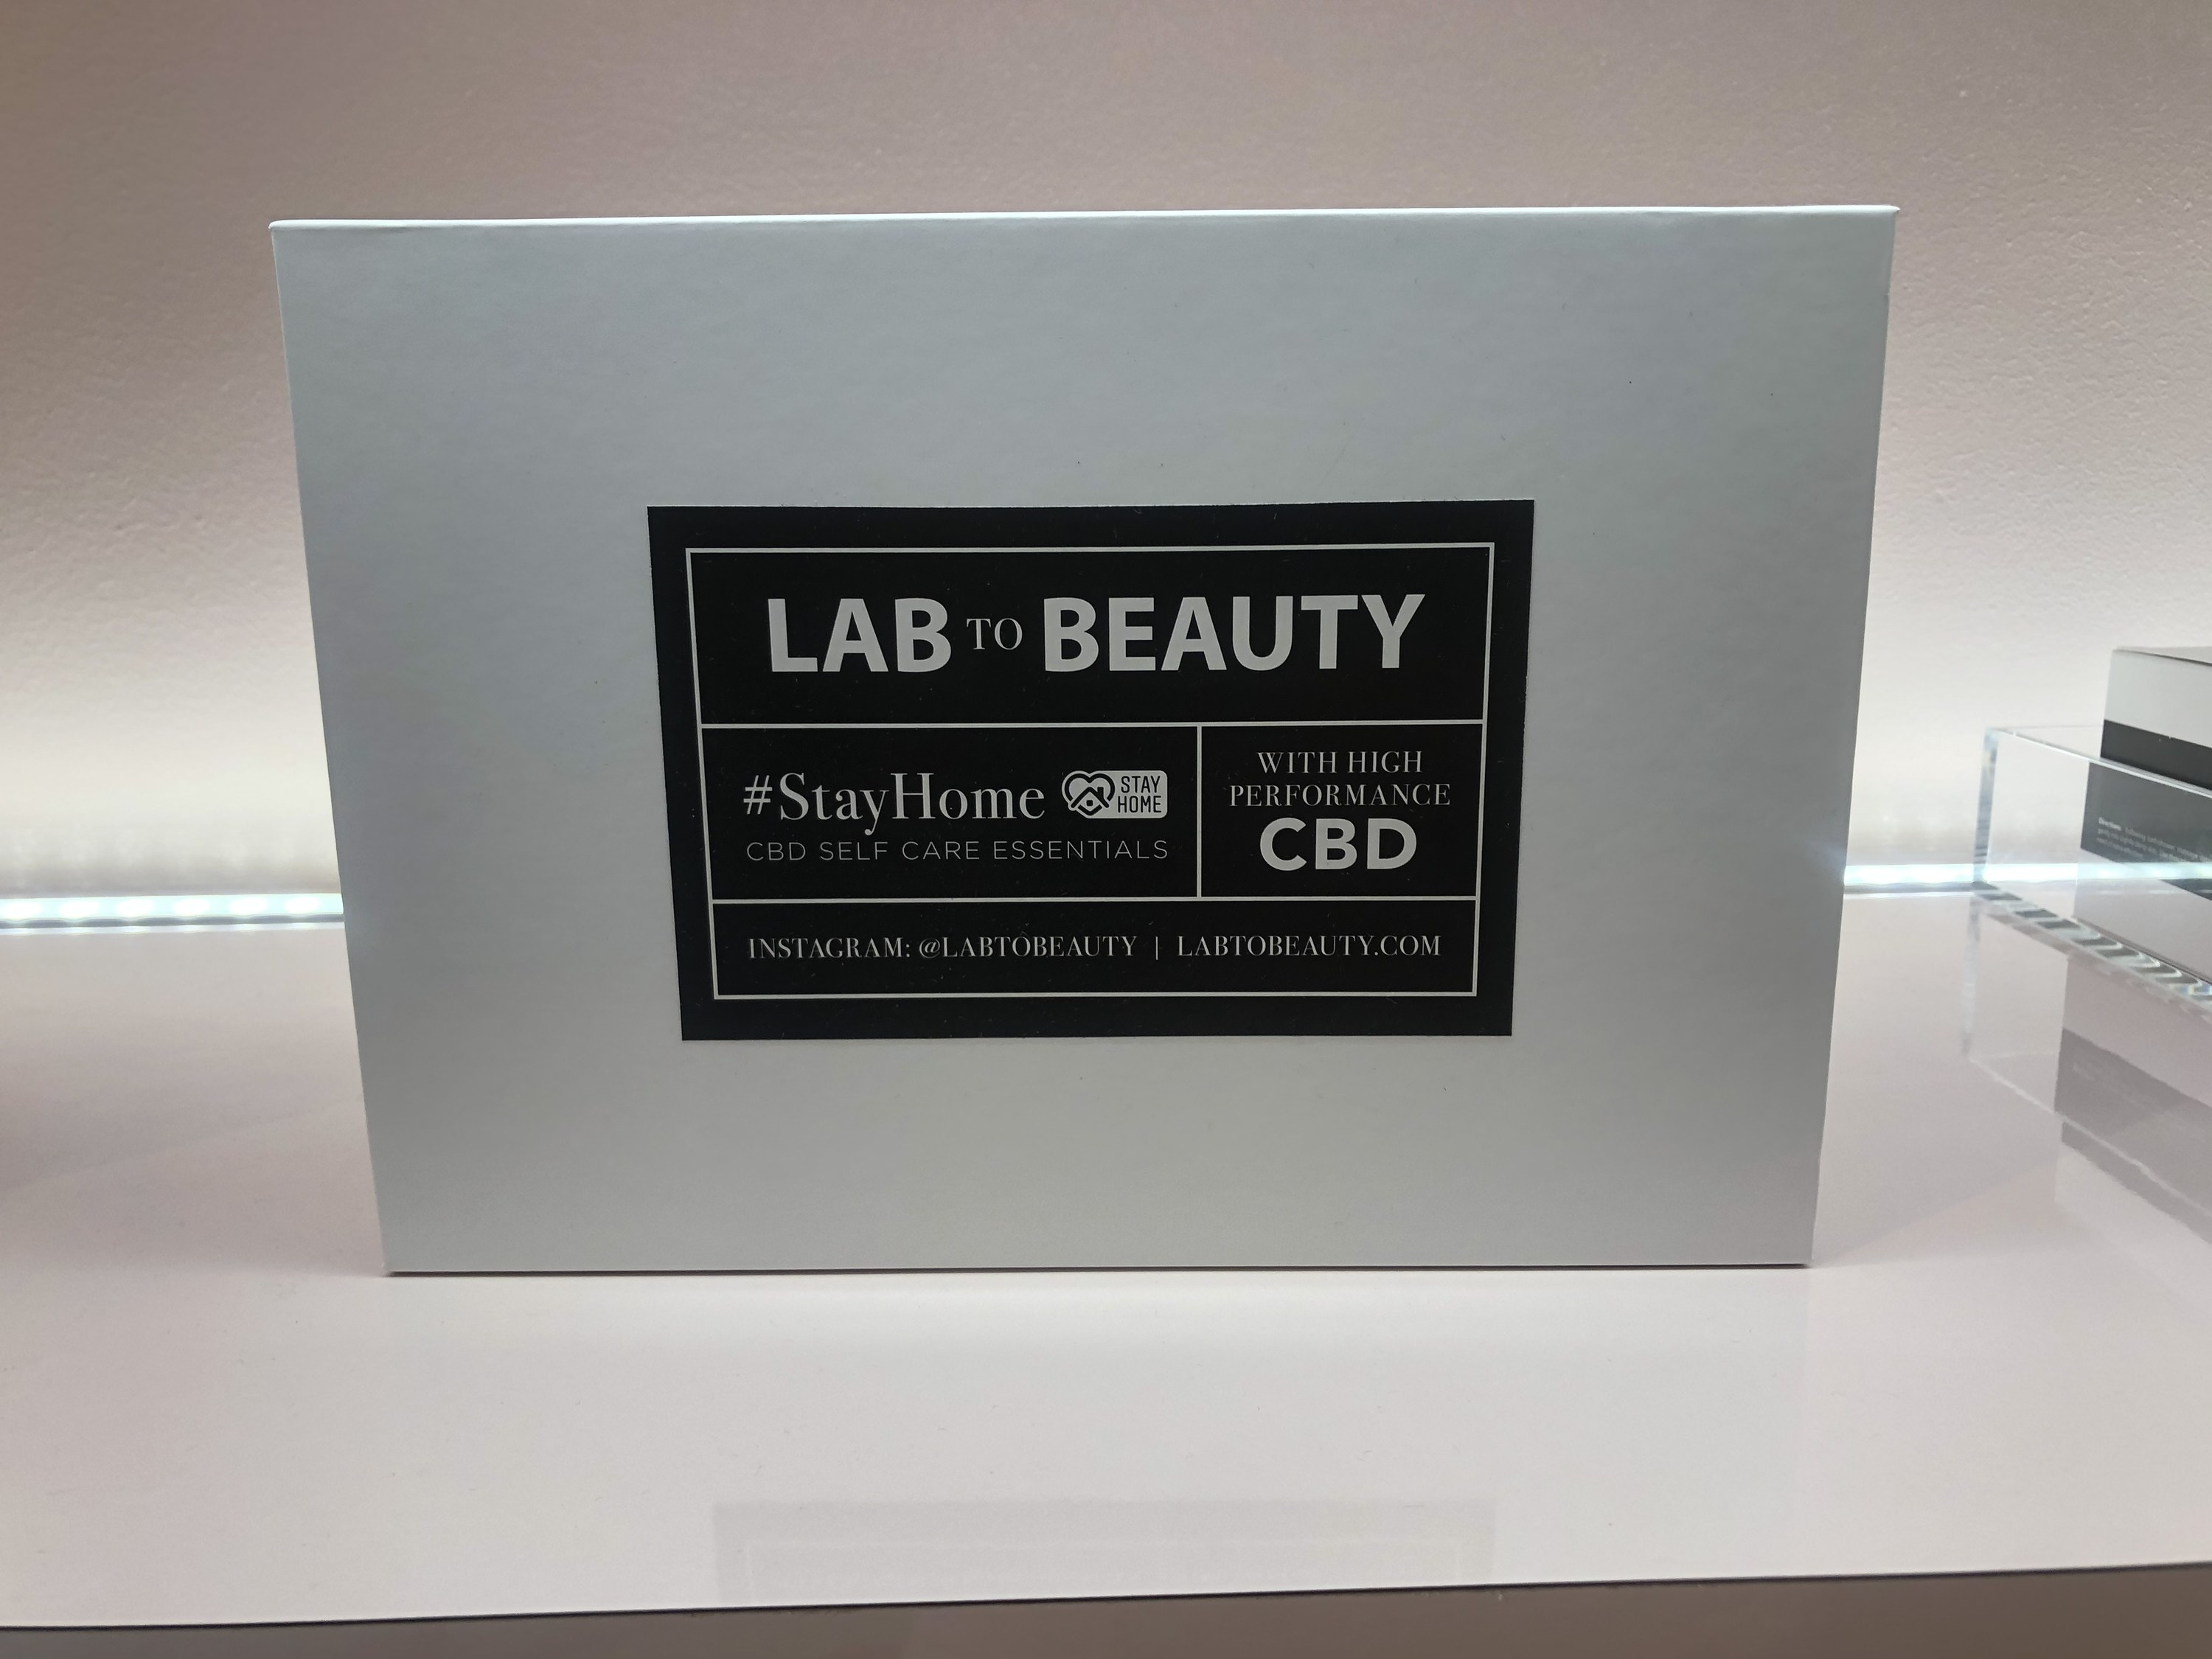 A #StayHome-themed Lab to Beauty product